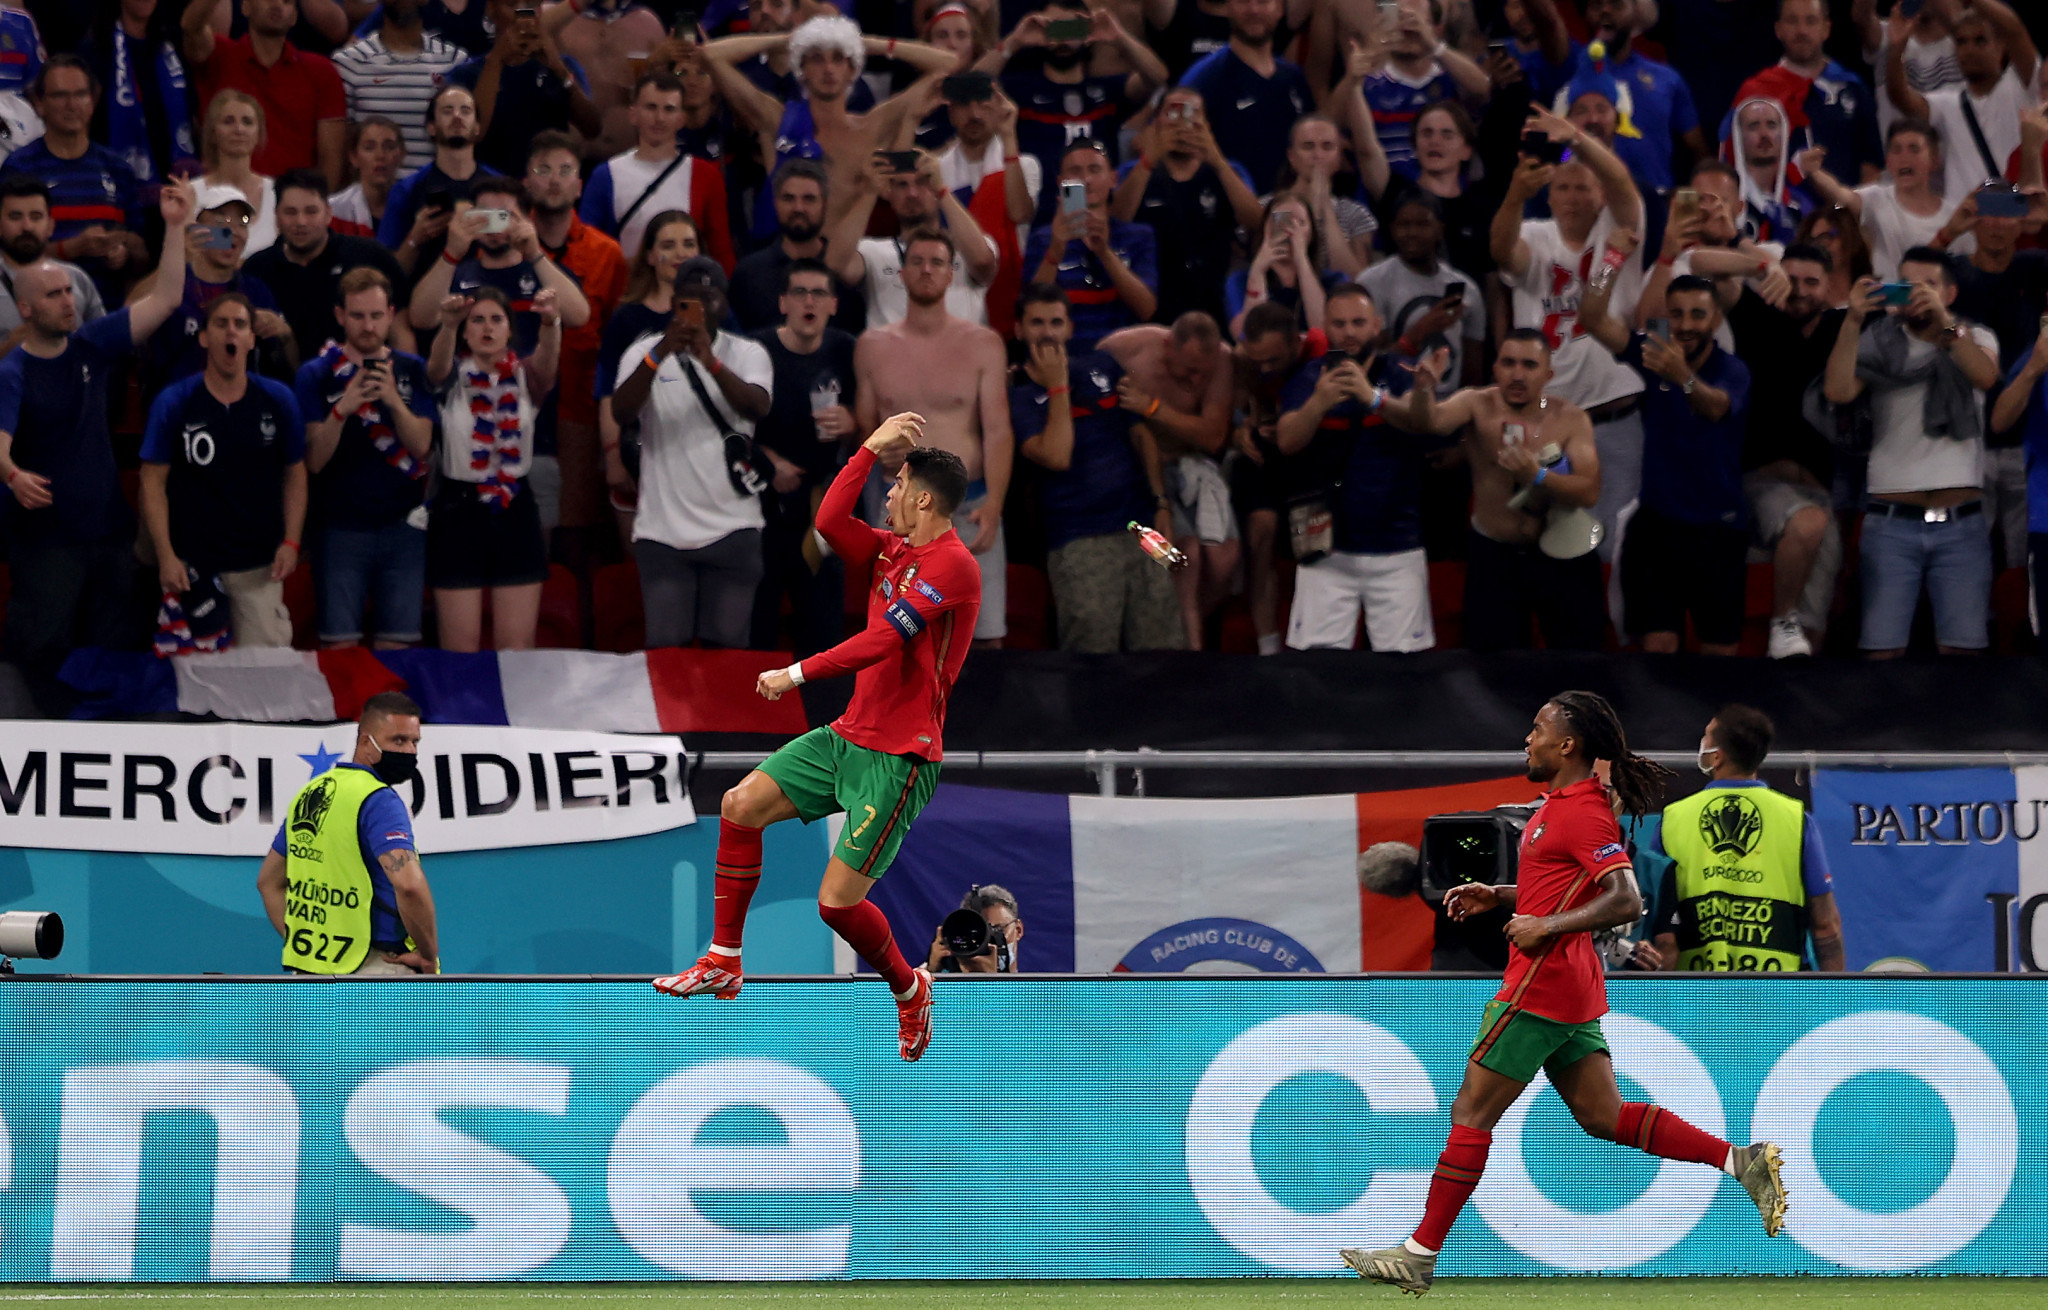 Most successful teams and current holders progress after eventful final day of Euro 2020 group stages